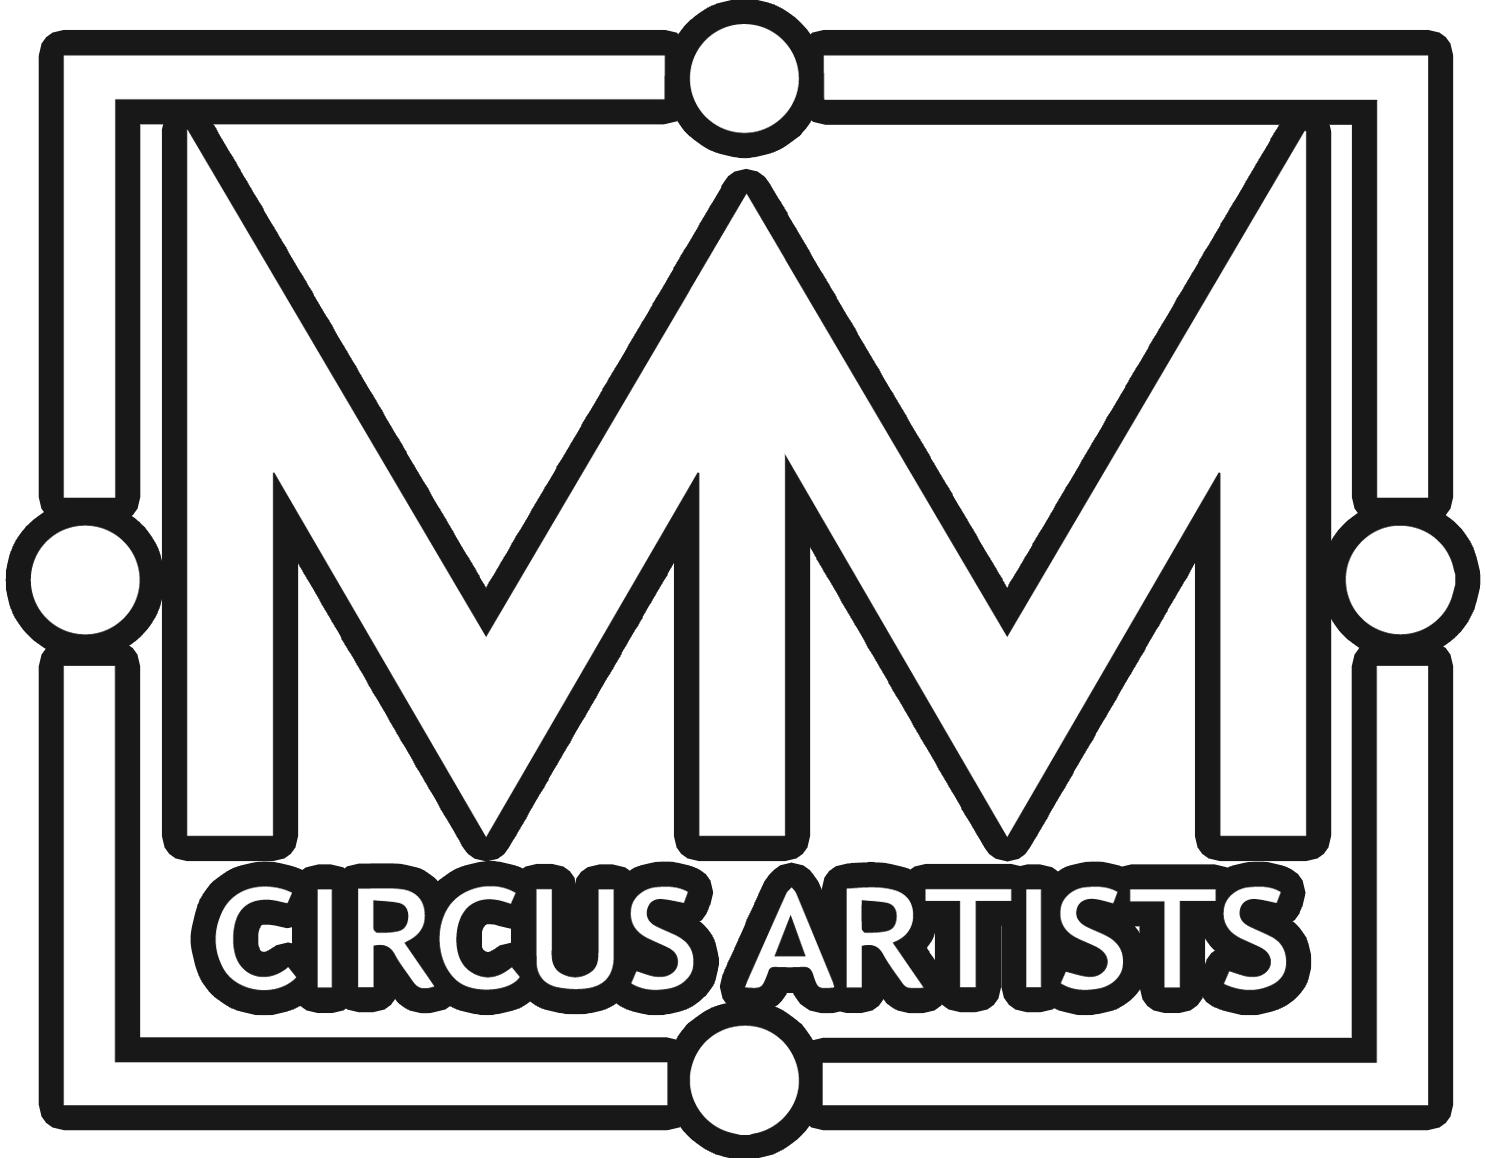 Circus Artists - M&M